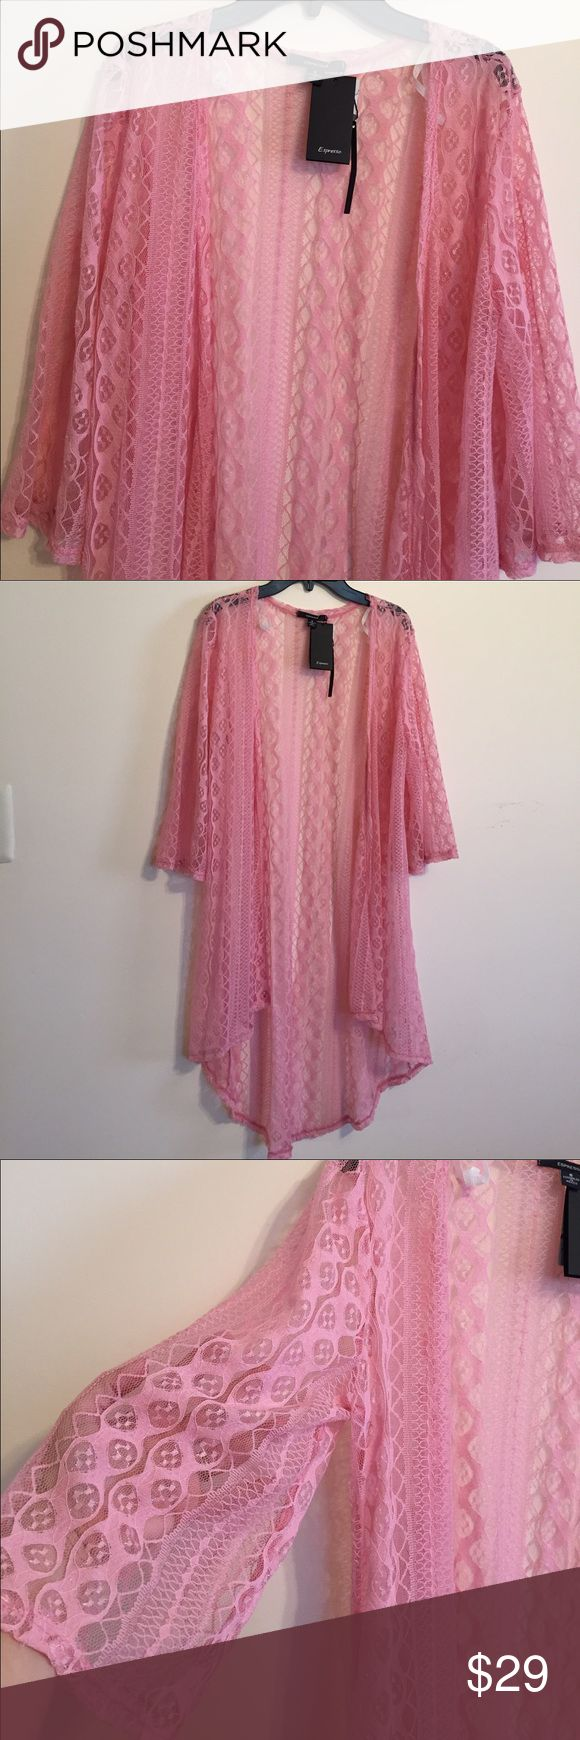 ✨Removing in 30 minutes✨Gorgeous Robe/Cover Up Gorgeous Robe/Cover Up - Similar to LuLaRoe Monroe - New with tags LuLaRoe Intimates & Sleepwear Robes